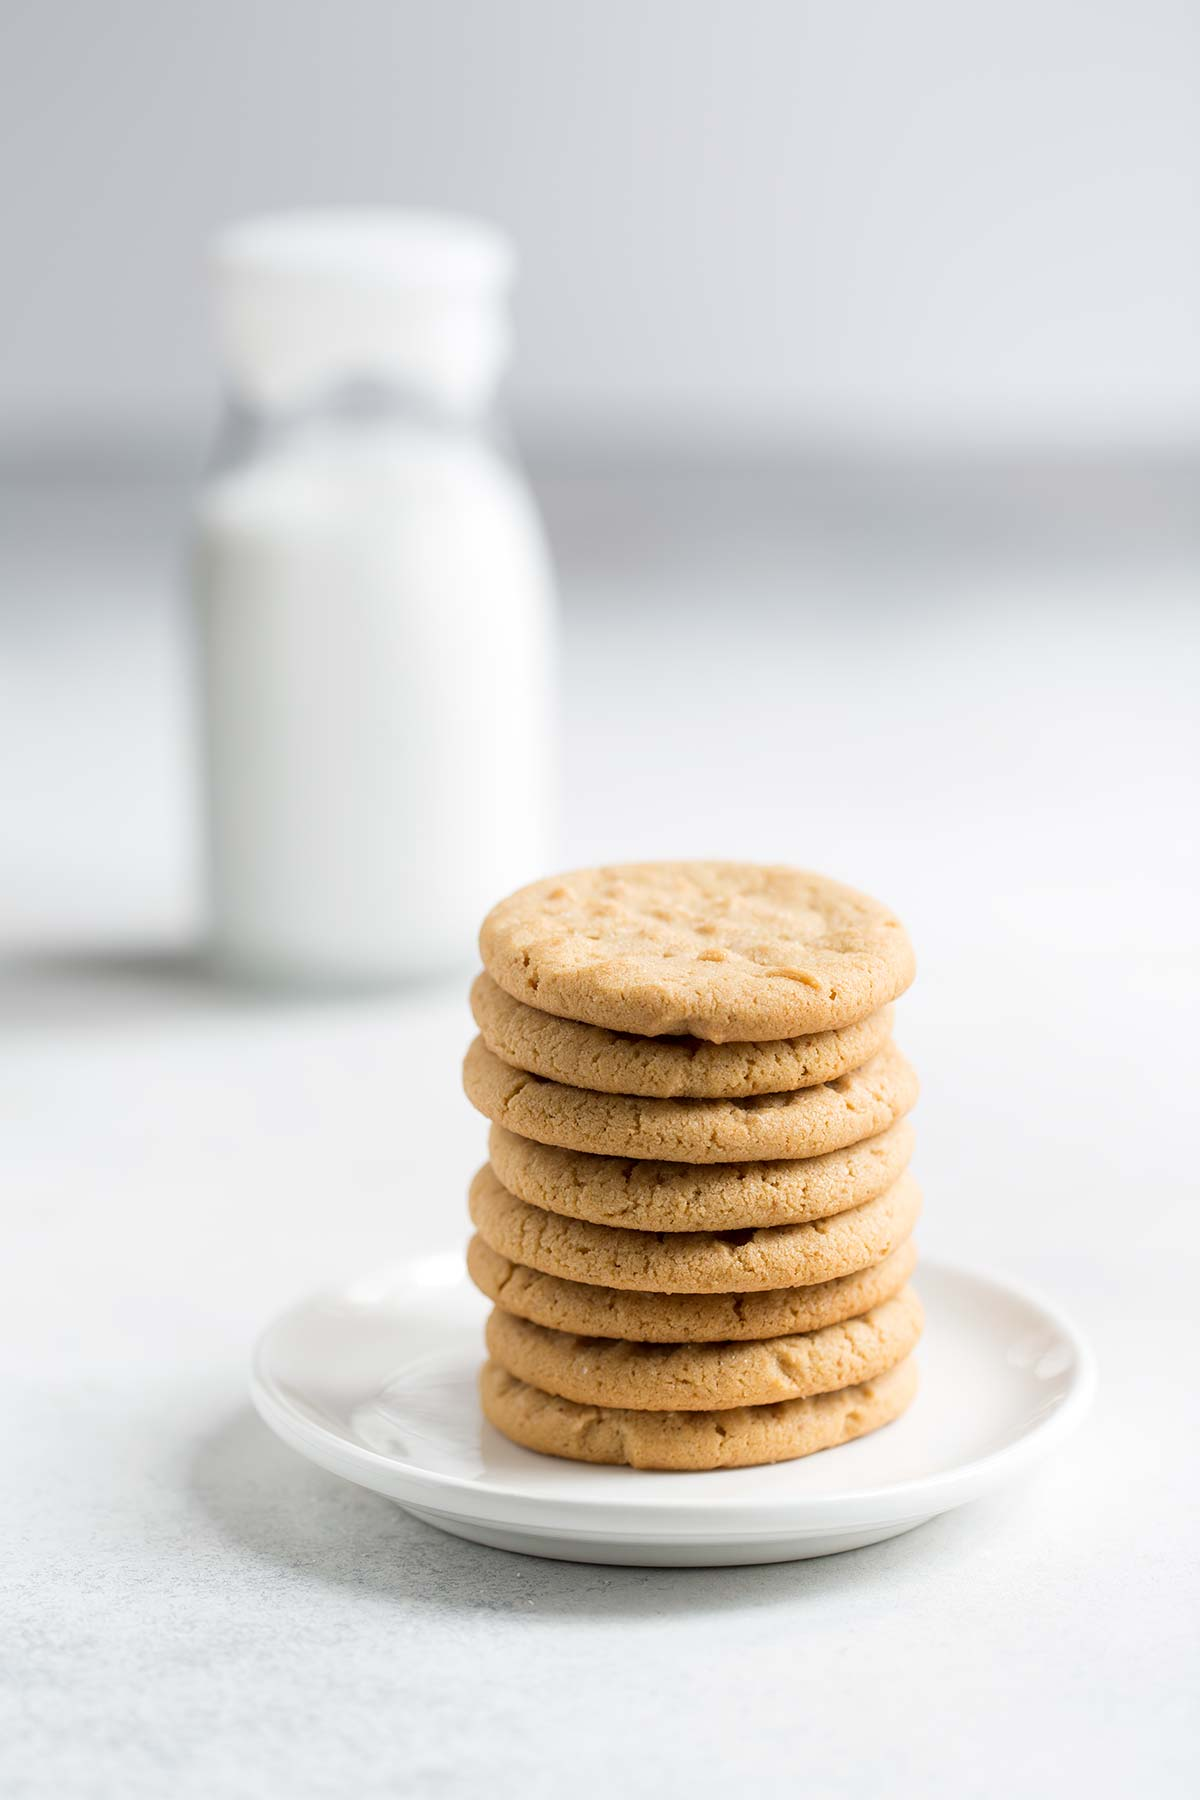 Easy peanut butter cookies stacked on a white plate in the foreground, with a glass bottle of milk in the background.